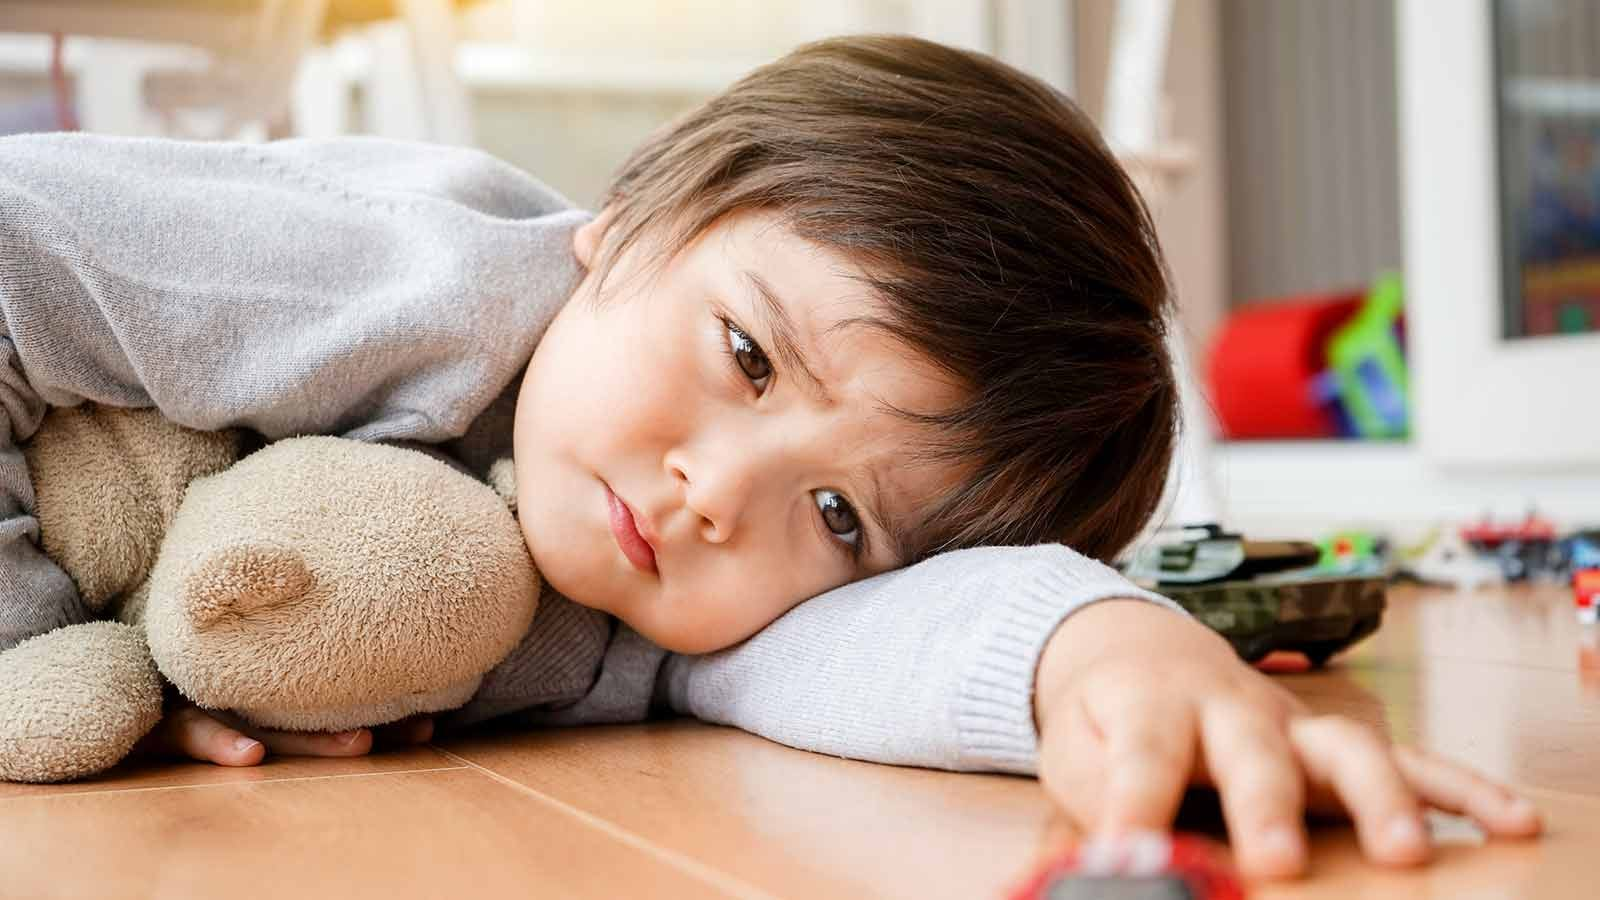 Upset toddler laying on the floor and pouting